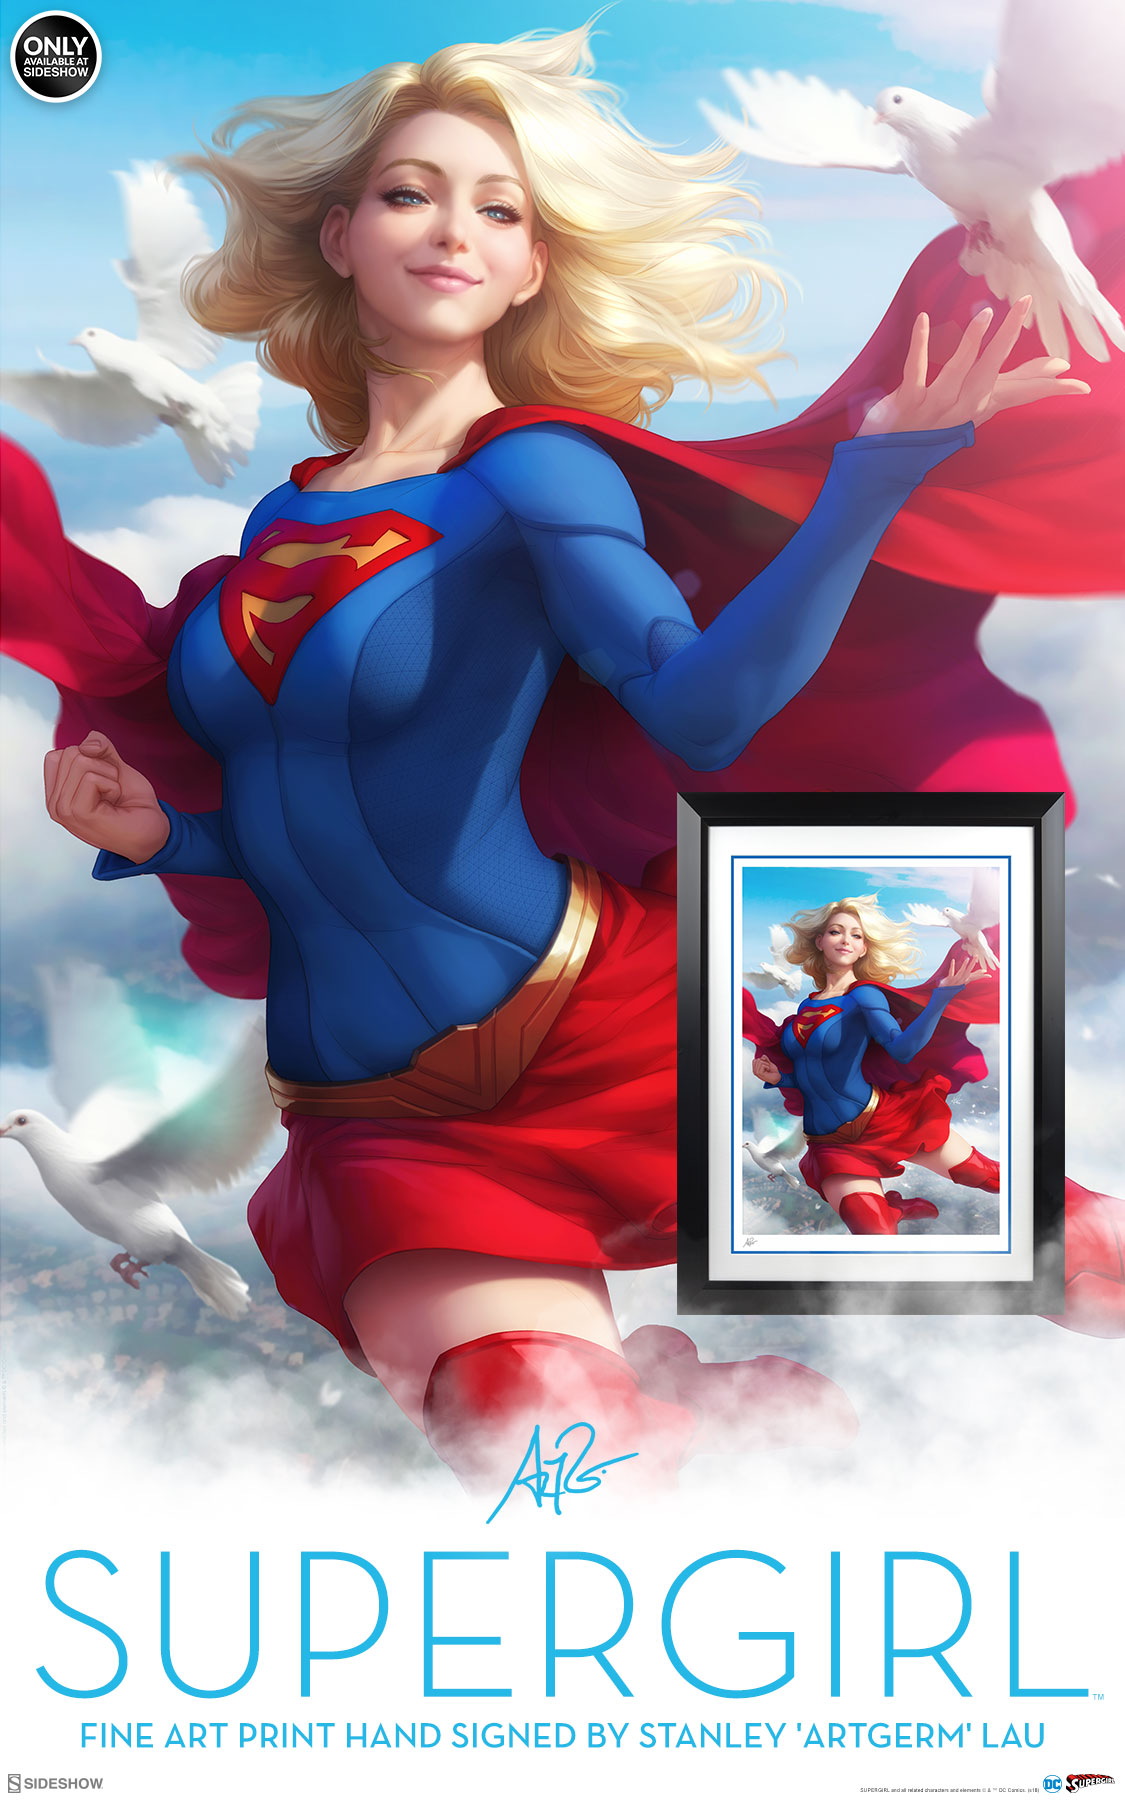 Supergirl Fine Art Print Sideshow Collectibles